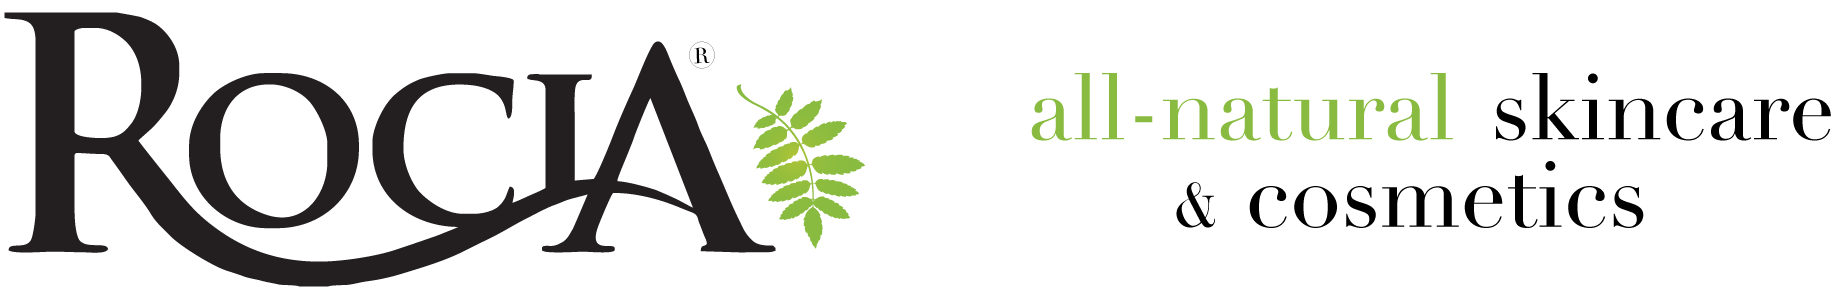 rocia® | all-natural skincare & cosmetics  logo